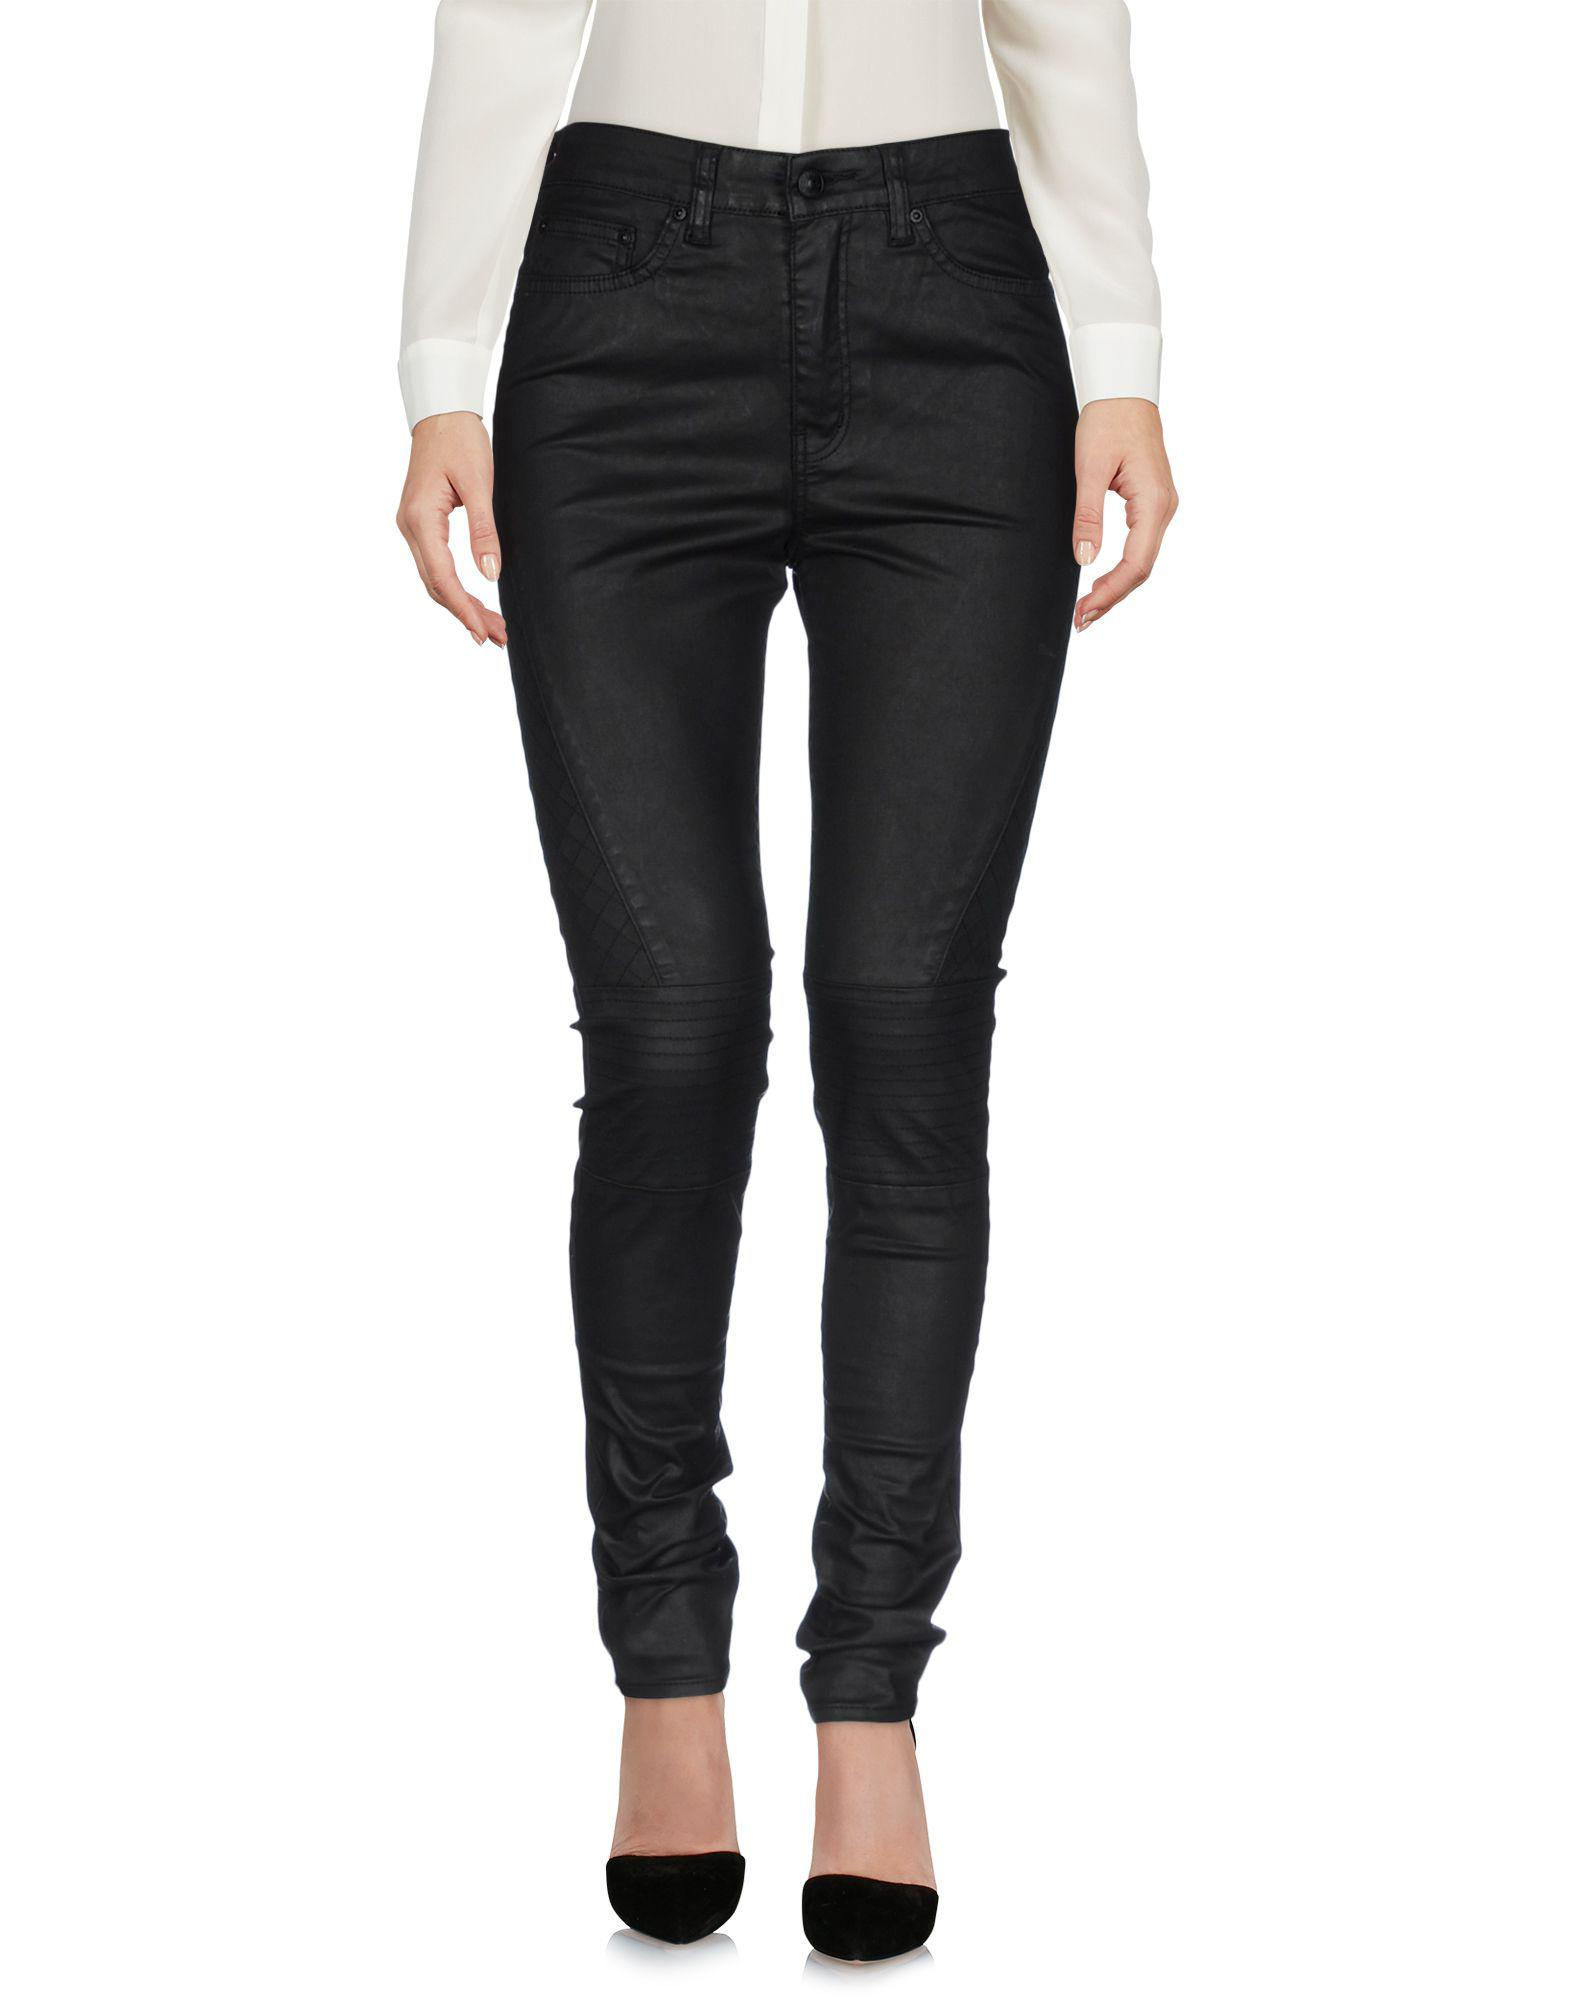 Shop For Online TROUSERS - Casual trousers Rip Curl 100% Authentic Online Geniue Stockist Cheap Price Sale Wiki Sale Outlet Locations WPyZ0c